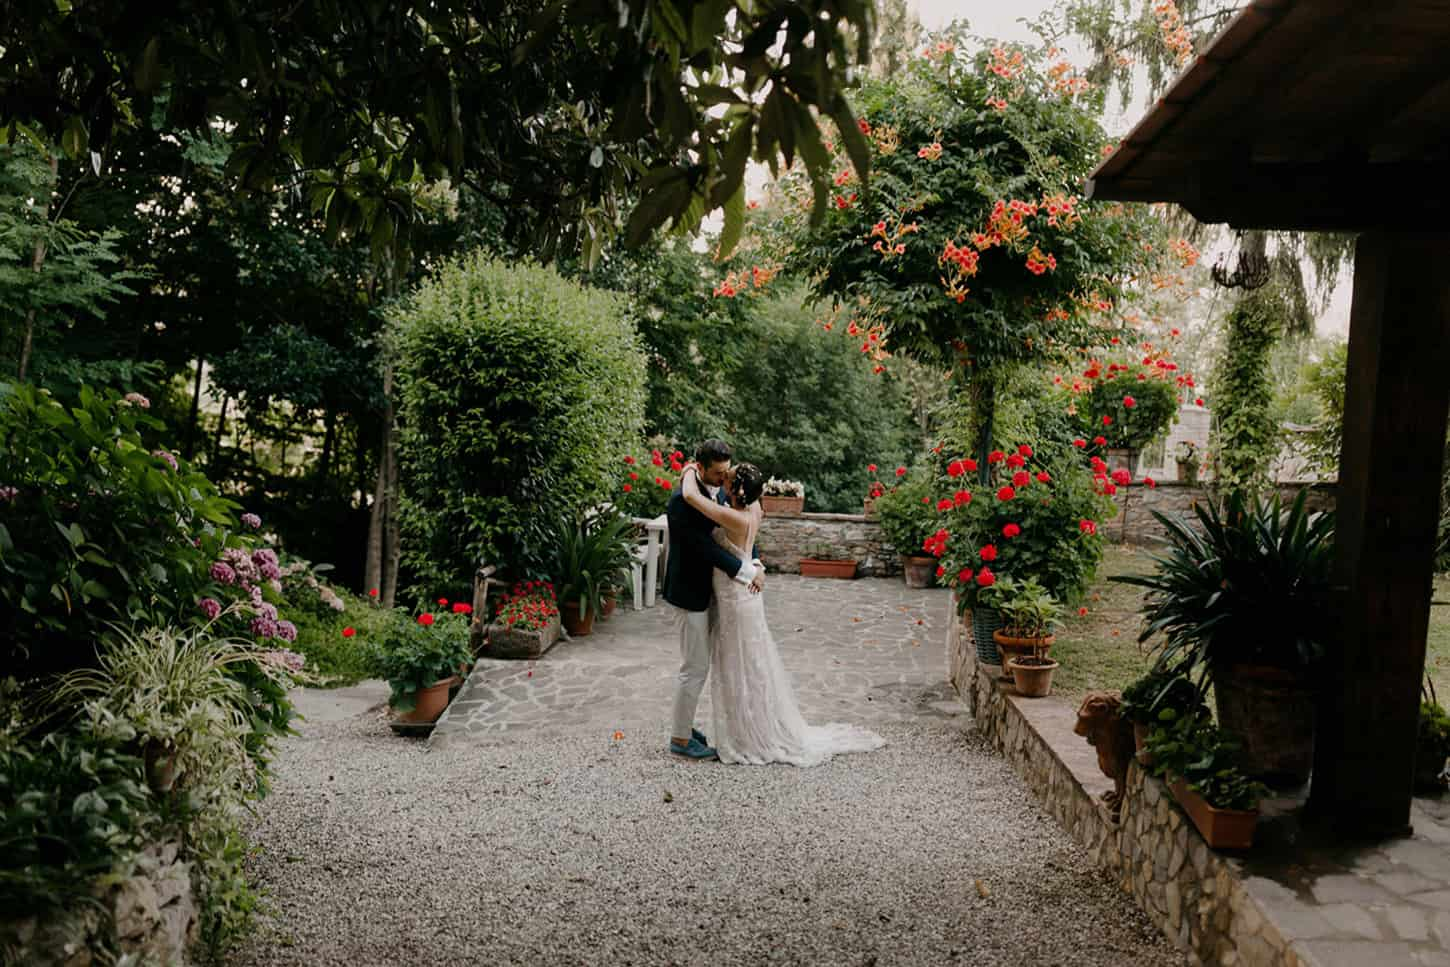 129-kieran-laura-italy-lucca-destination-wedding